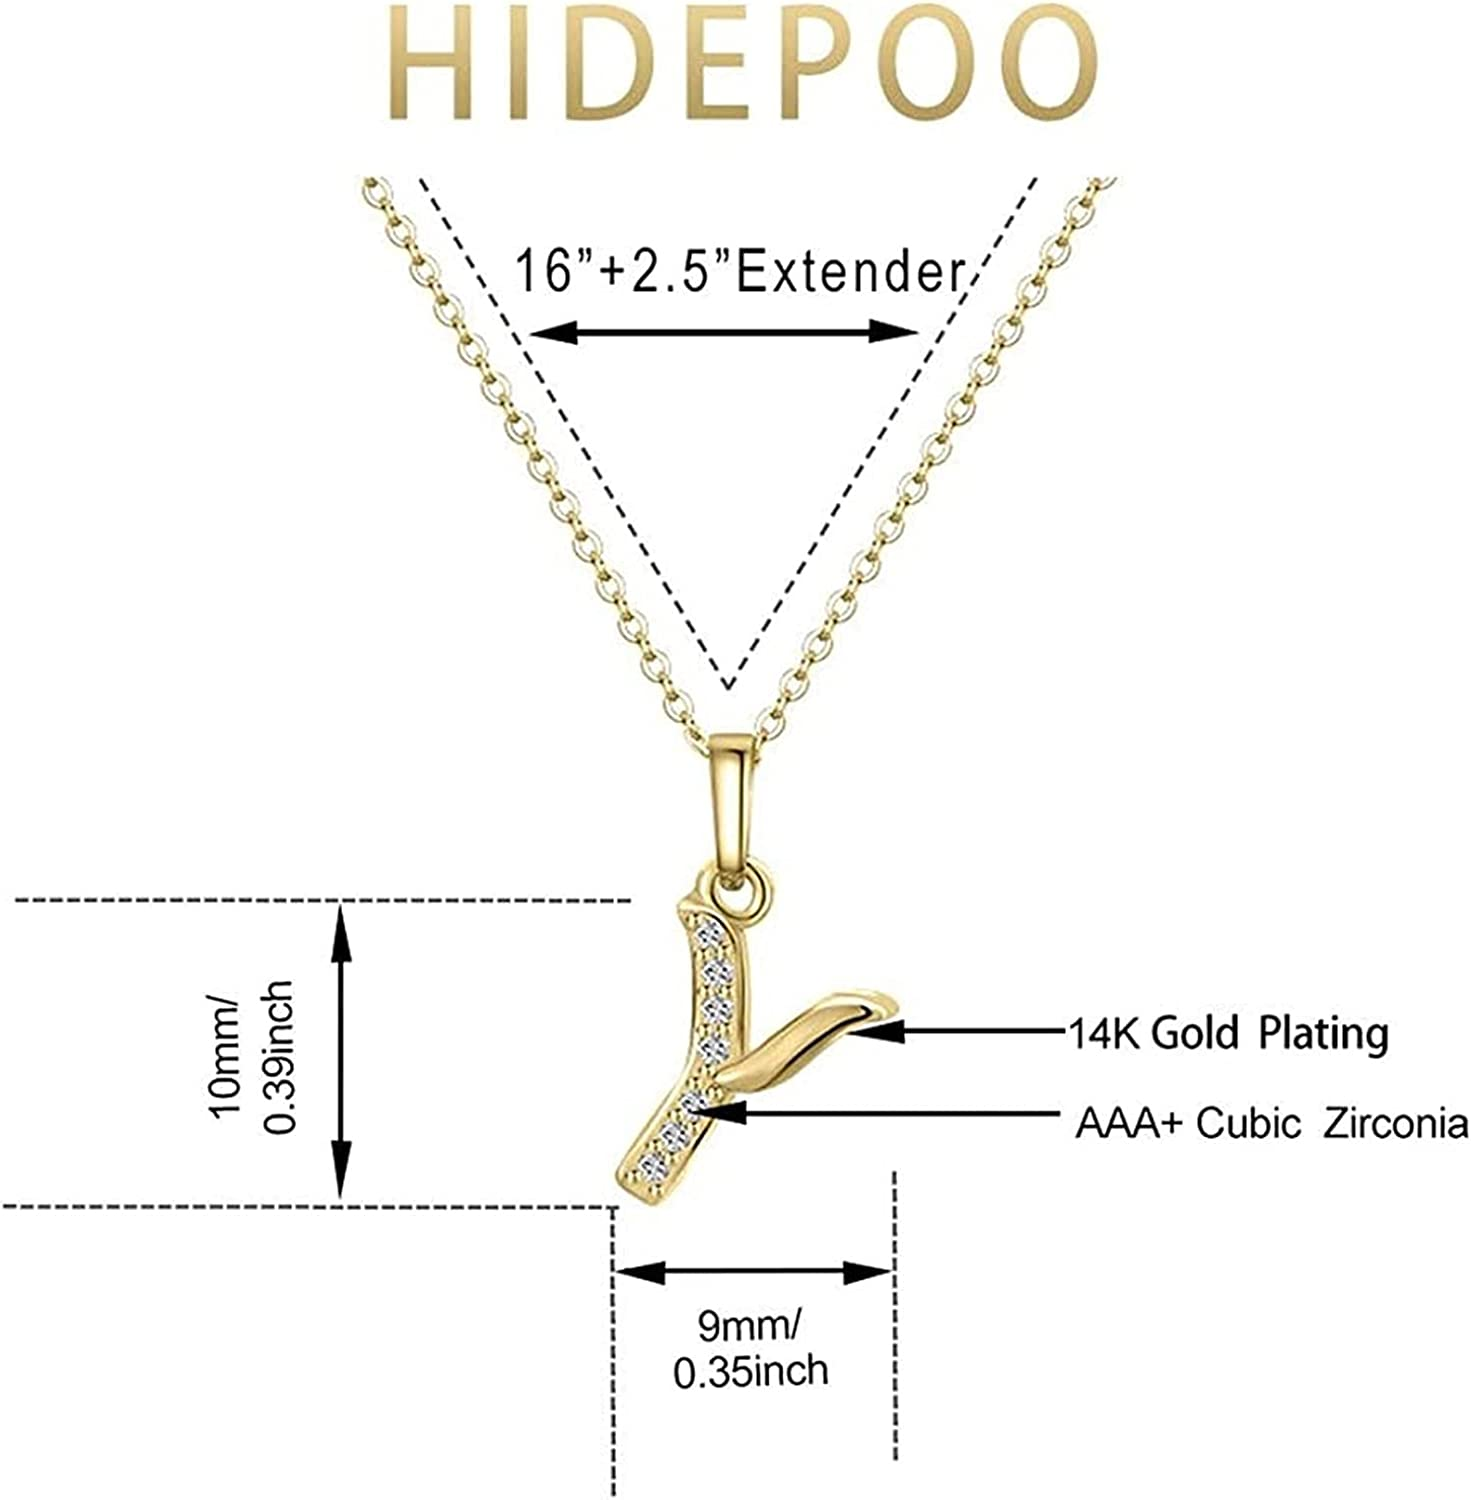 Jsmhh Necklace for Women – 14k Gold Filled Dainty Cubic Zirconia Monogram Letter Pendant Necklace Tiny Cursive Uppercase 26 AlphabetNecklace Charm Jewelry Gifts for Girls Bridesmaid (Color : Y)